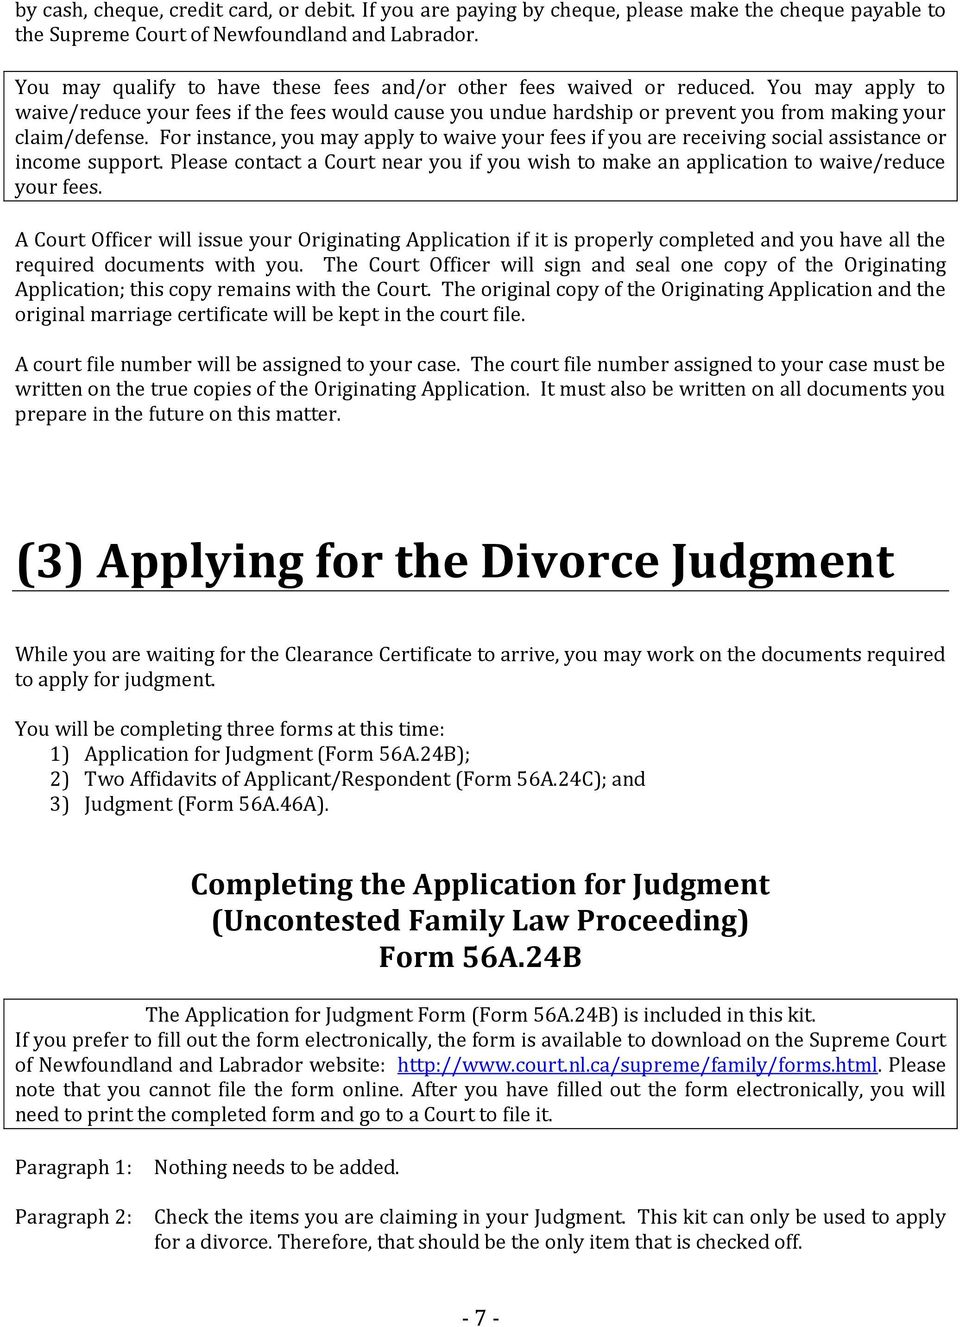 Joint or co applicant uncontested divorce self help kit pdf you may apply to waivereduce your fees if the fees would cause you undue solutioingenieria Choice Image